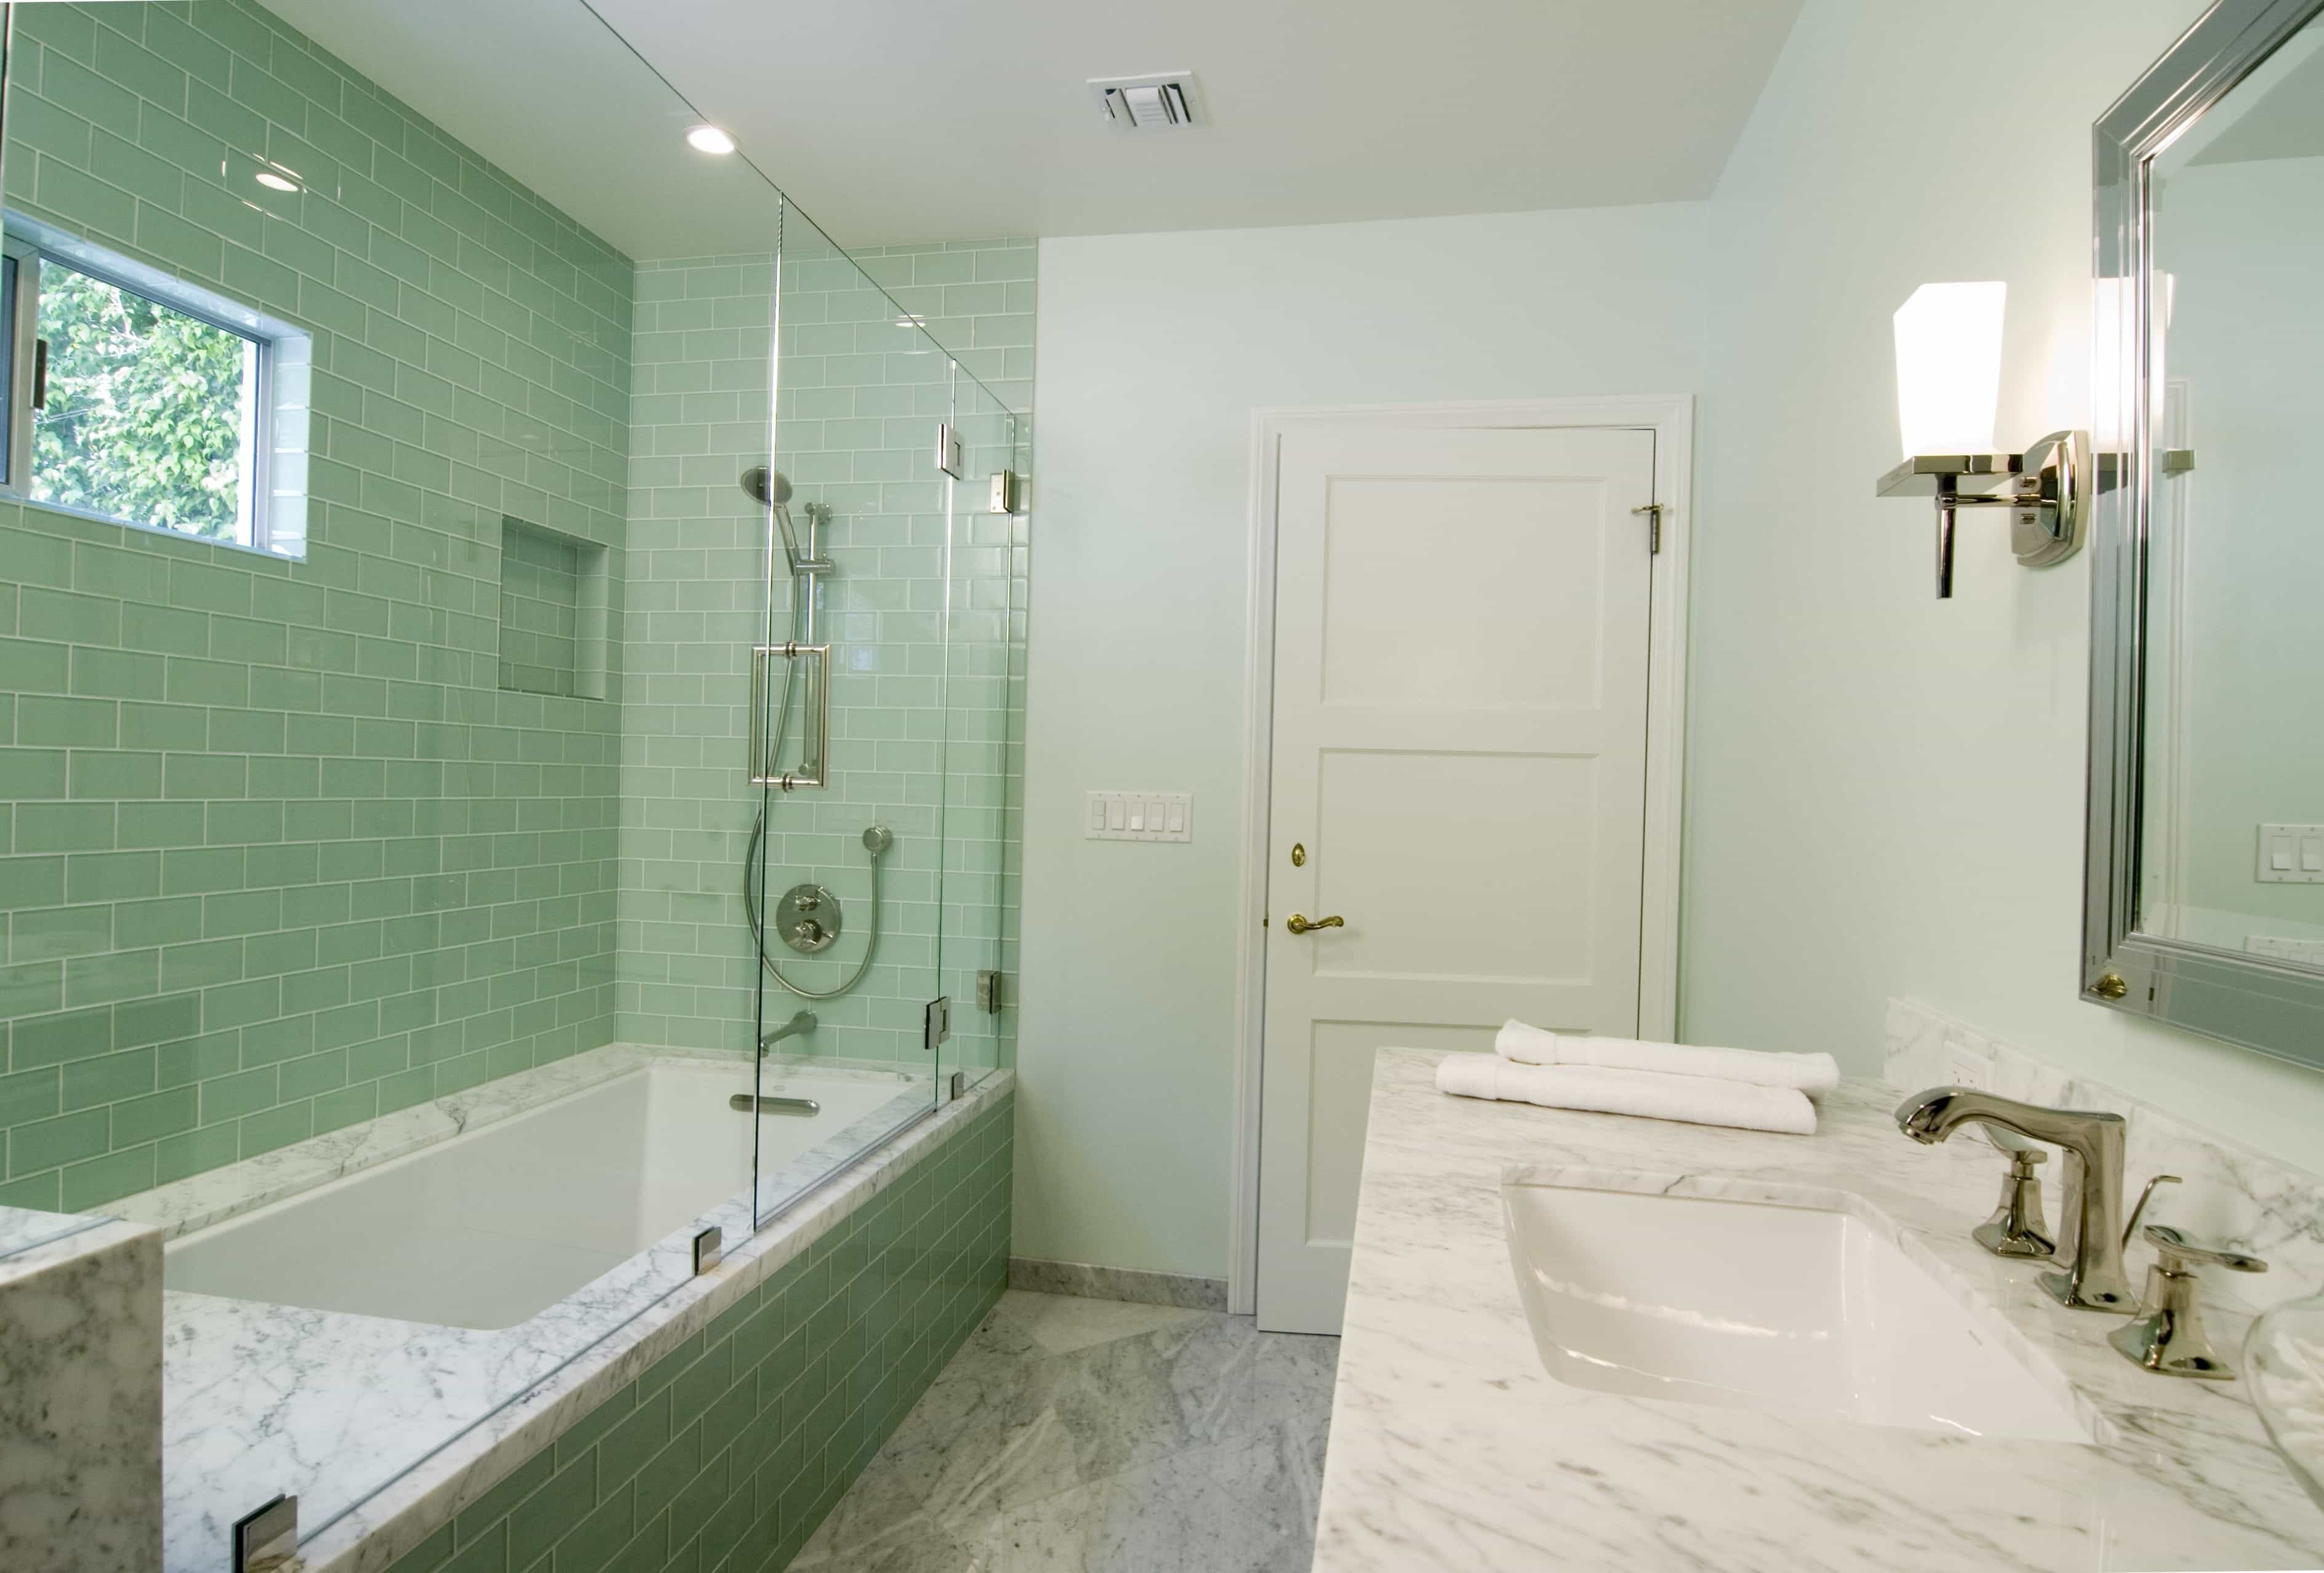 Classic Bathroom Interior Remodel With Green Ceramic Tiles For Fresh Looking (Image 5 of 12)